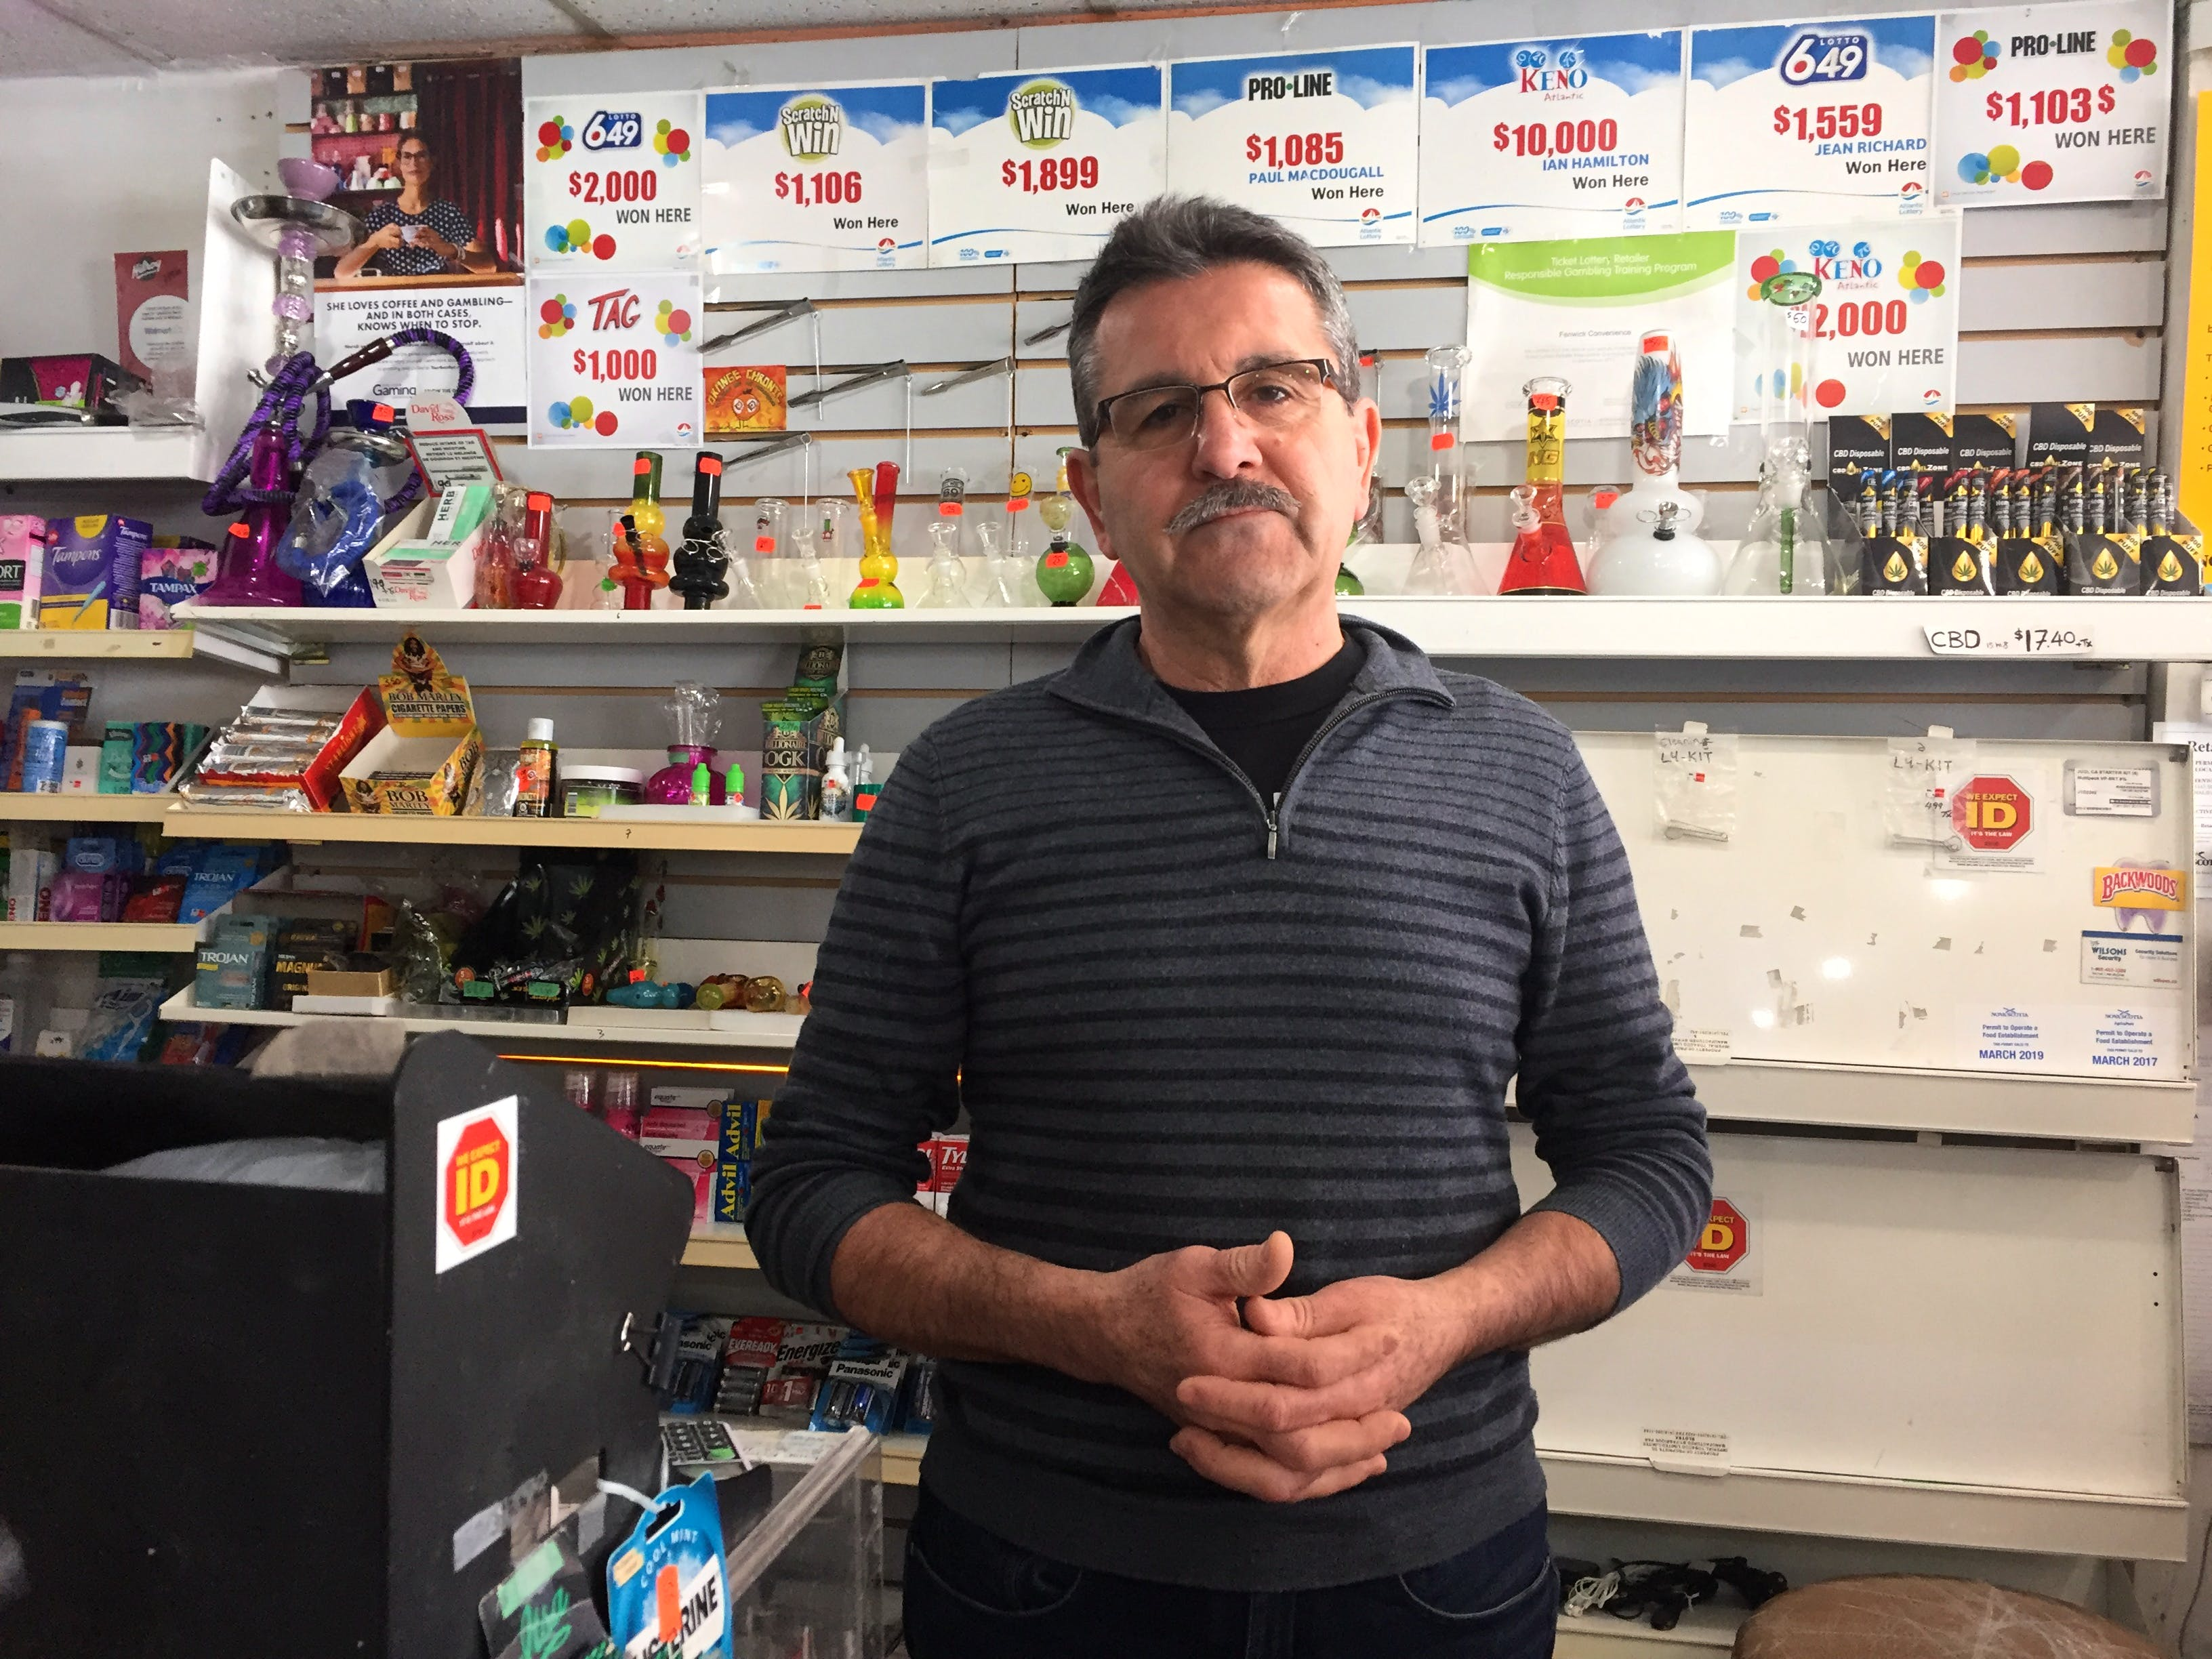 George Joukhadar, the proprietor of Fenwick Convenience store in Halifax, says he always checks for ID when someone who looks underage asks to buy a lottery ticket. He is shown in his store on Saturday, Feb. 15, 2020.